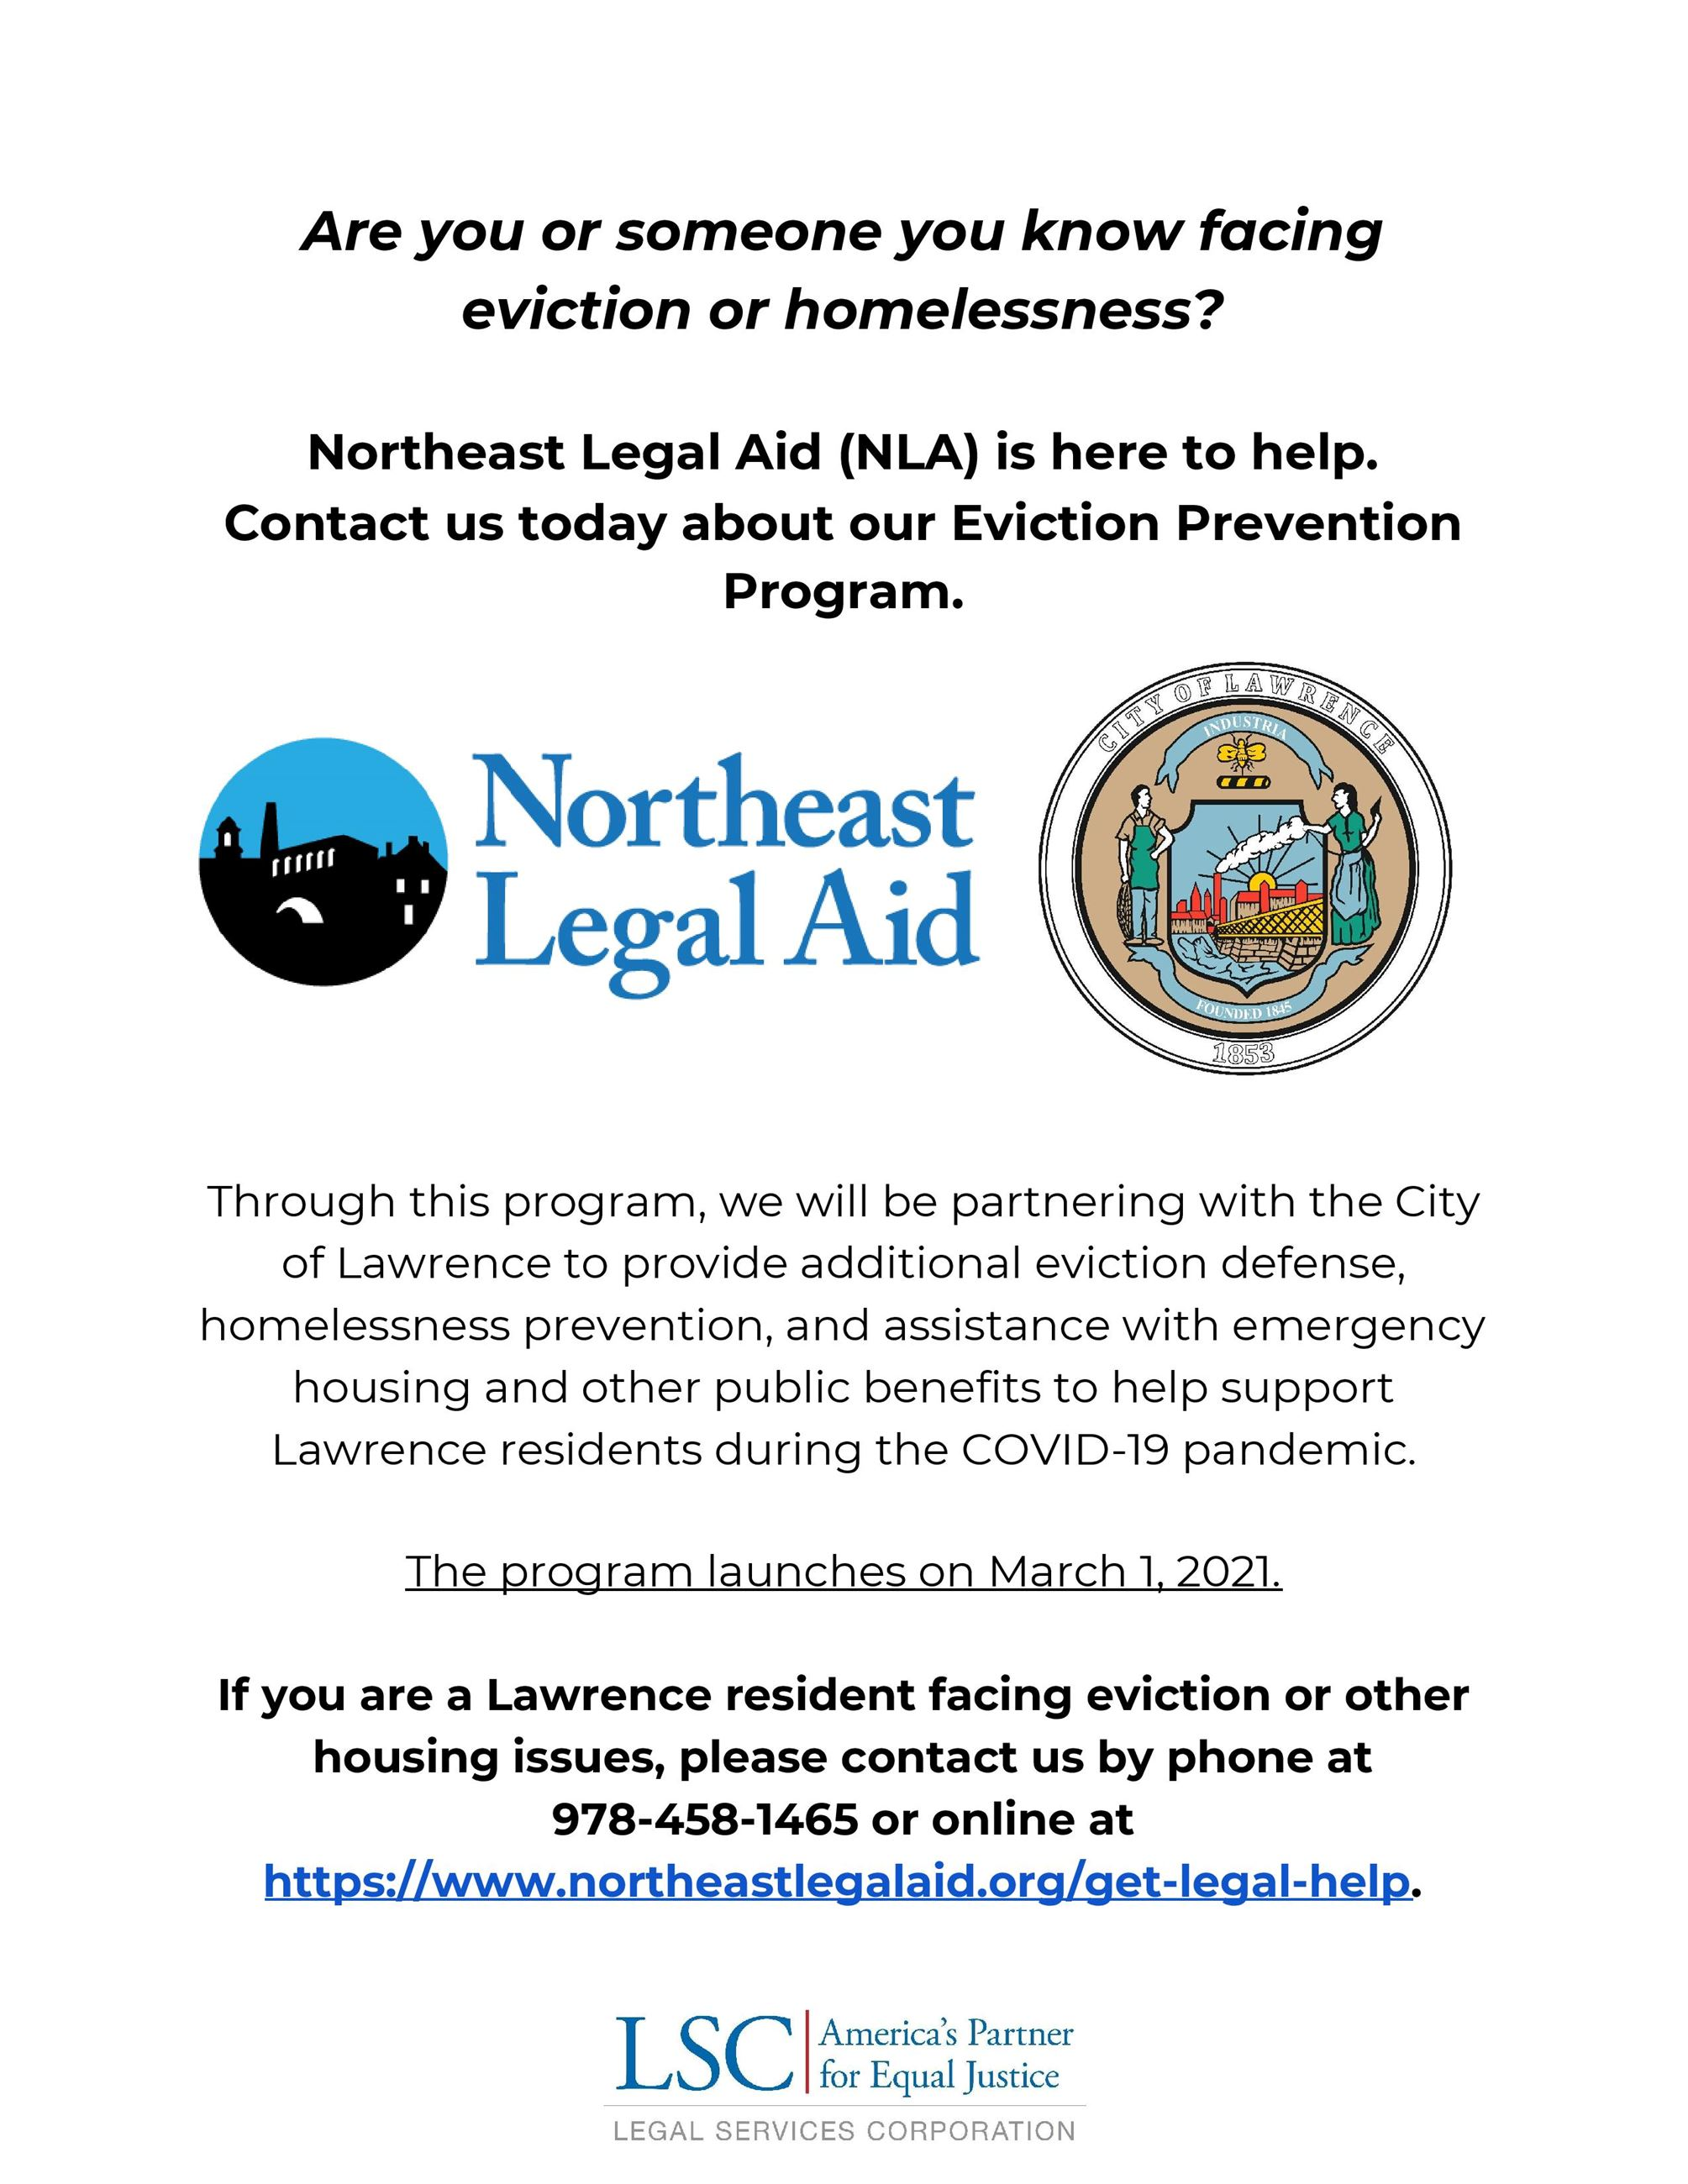 Eviction Prevention Program